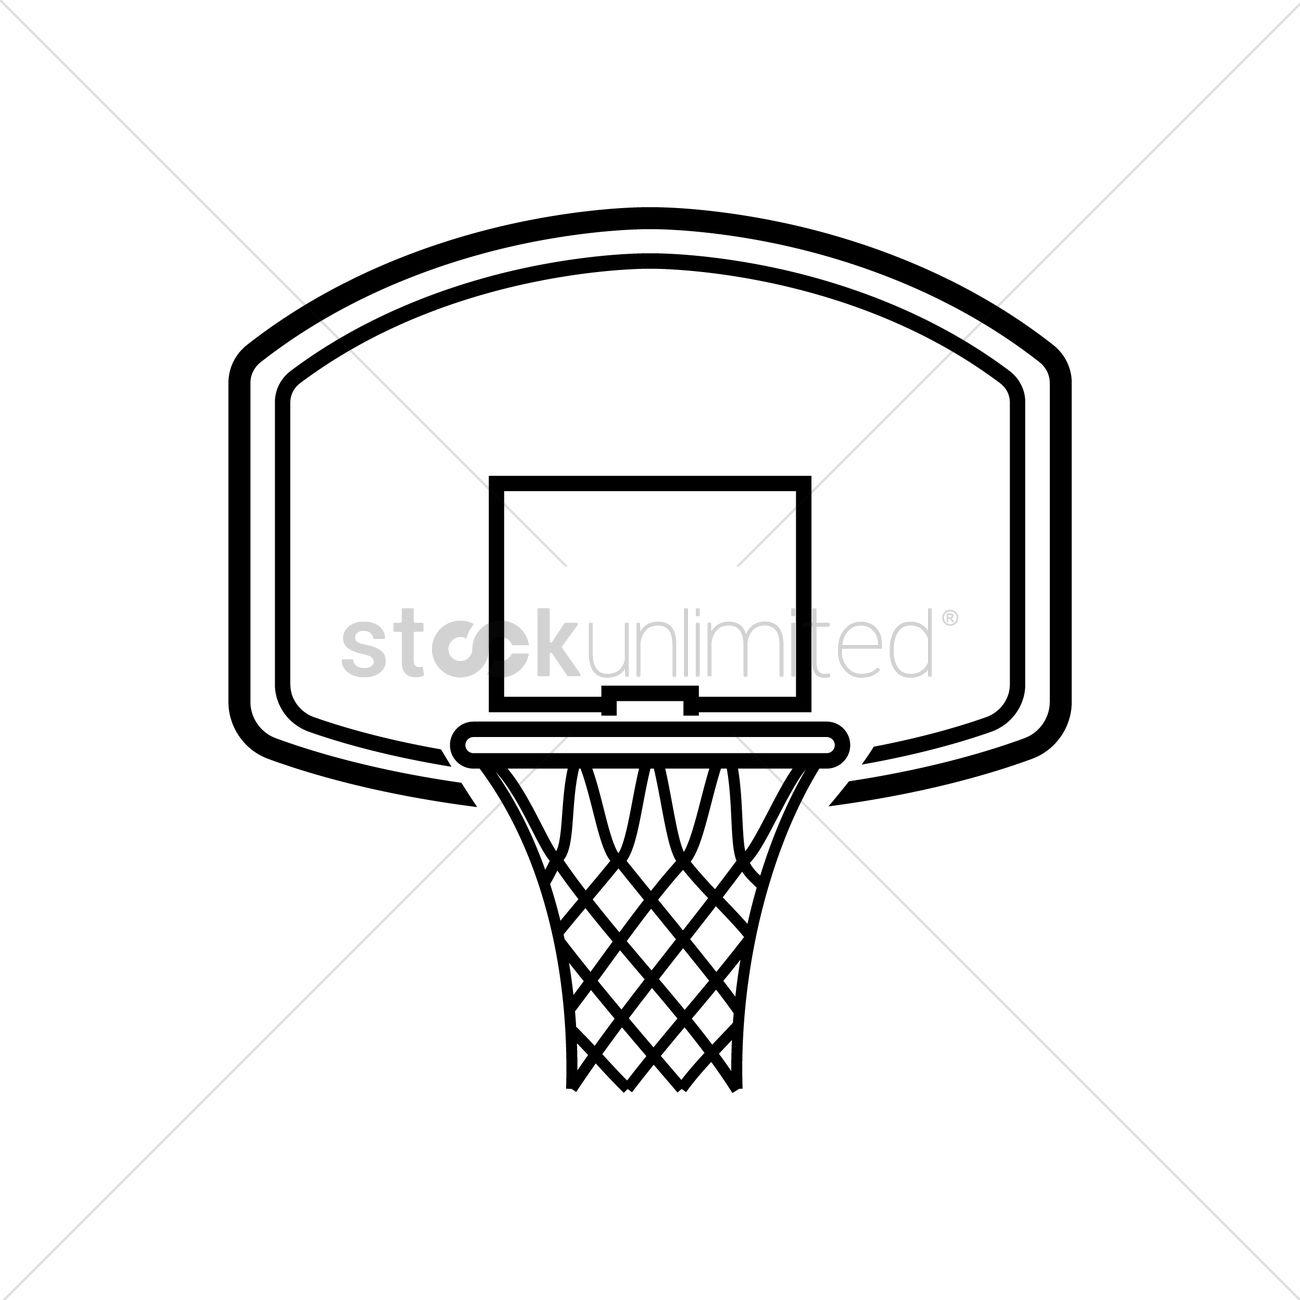 Basketball Ring Target Basketball Hoop Vector Image 1979496 Stockunlimited